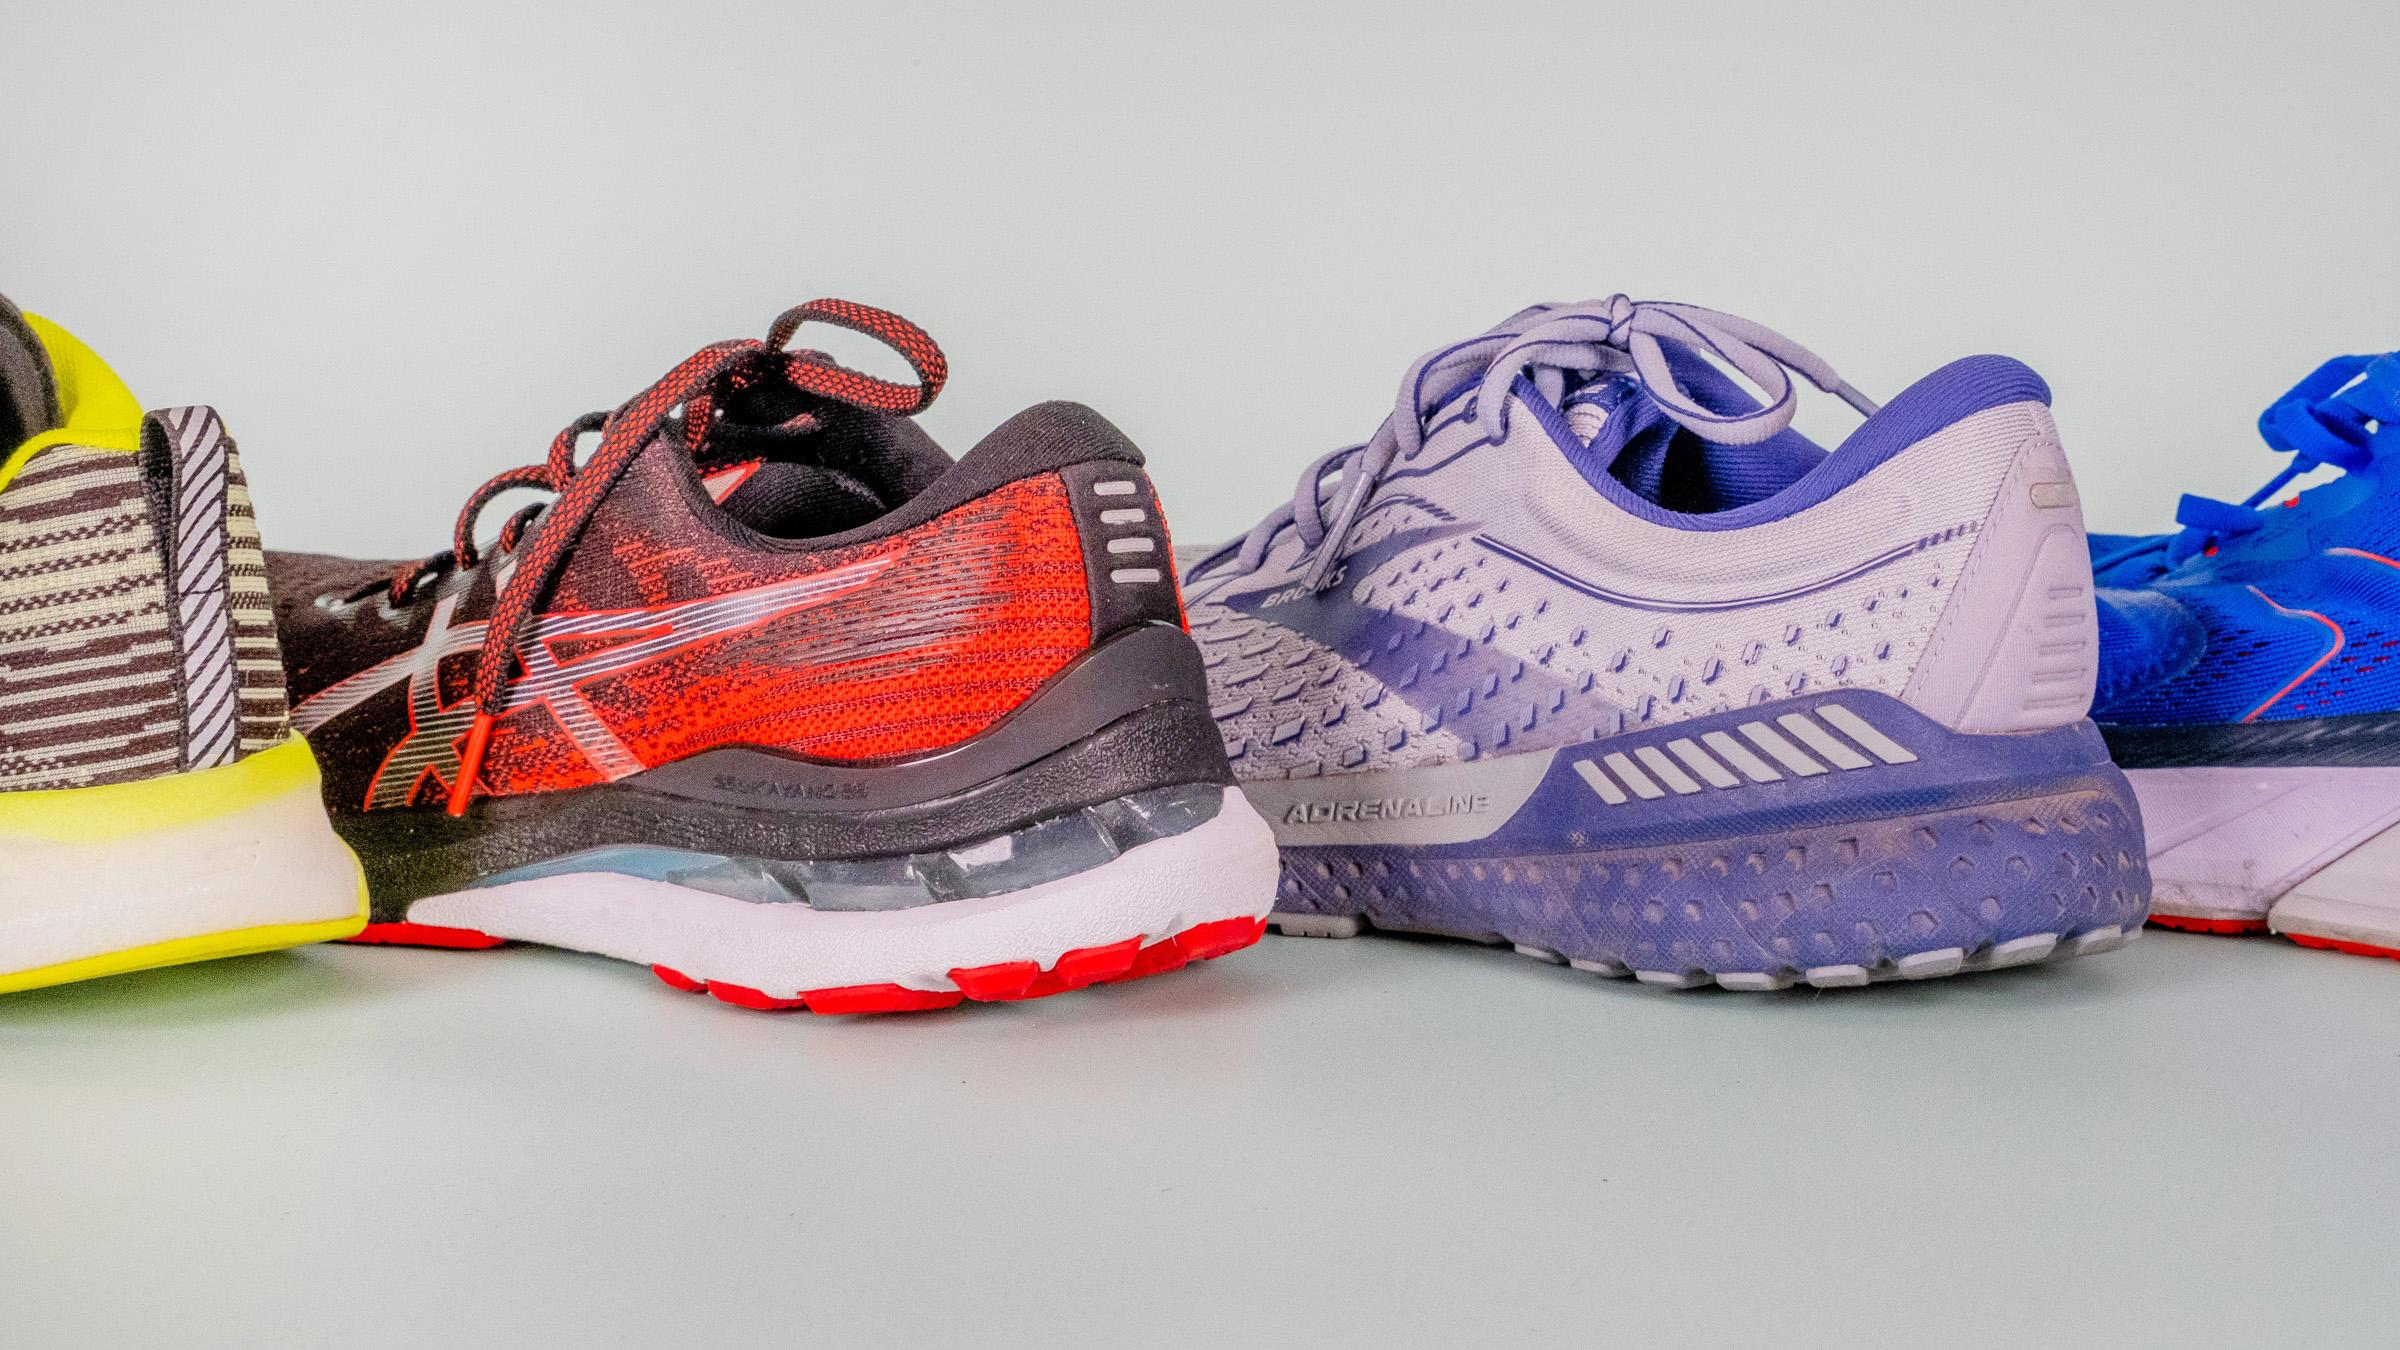 10 Best Motion Control Running Shoes in 2021